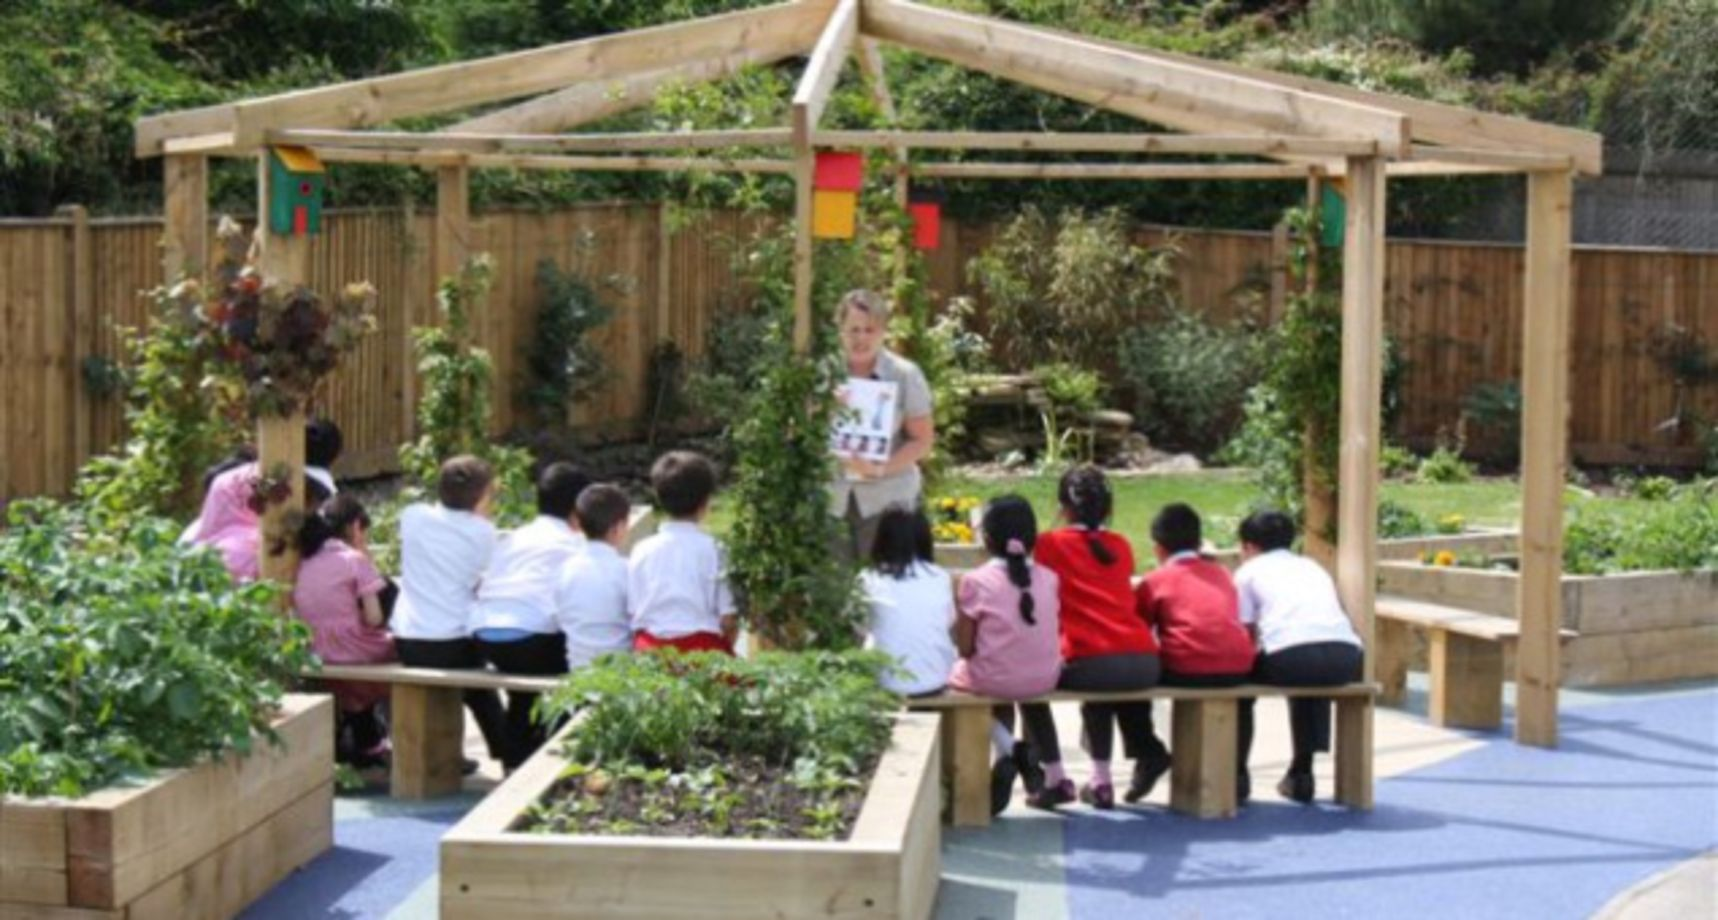 Outdoor Classroom Design Ideas ~ Cute and simple school garden design ideas round decor